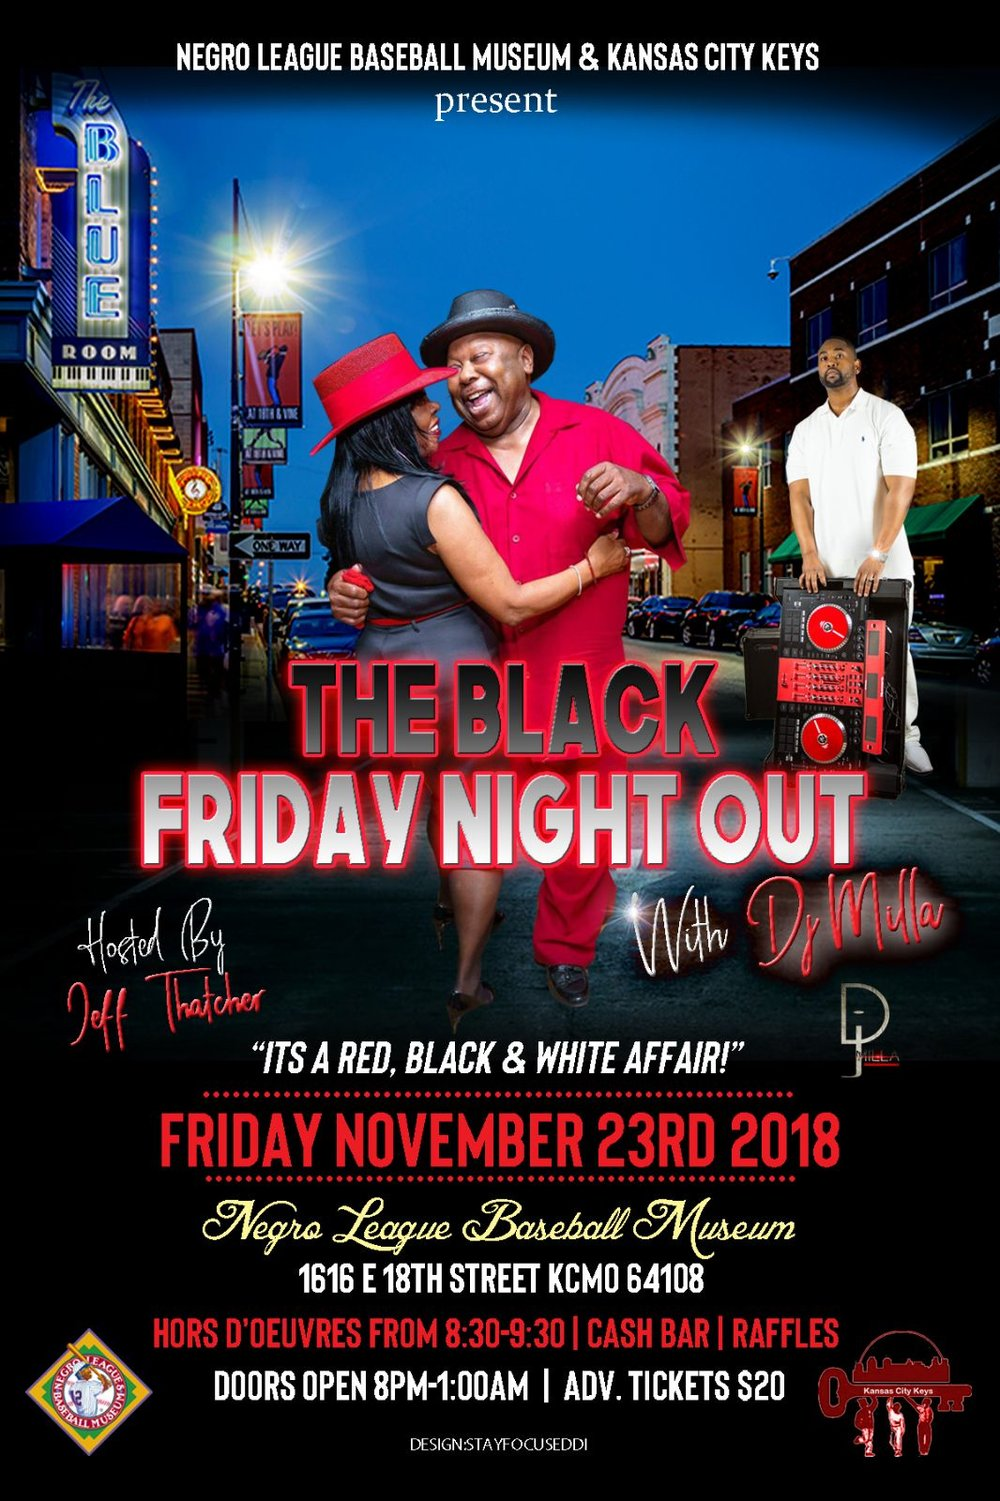 The Black Friday Night Out Fundraiser - The Keys holiday fundraiser event to be held on November 23rd at the Negro League Baseball Museum. This is a fun and social engaging event.